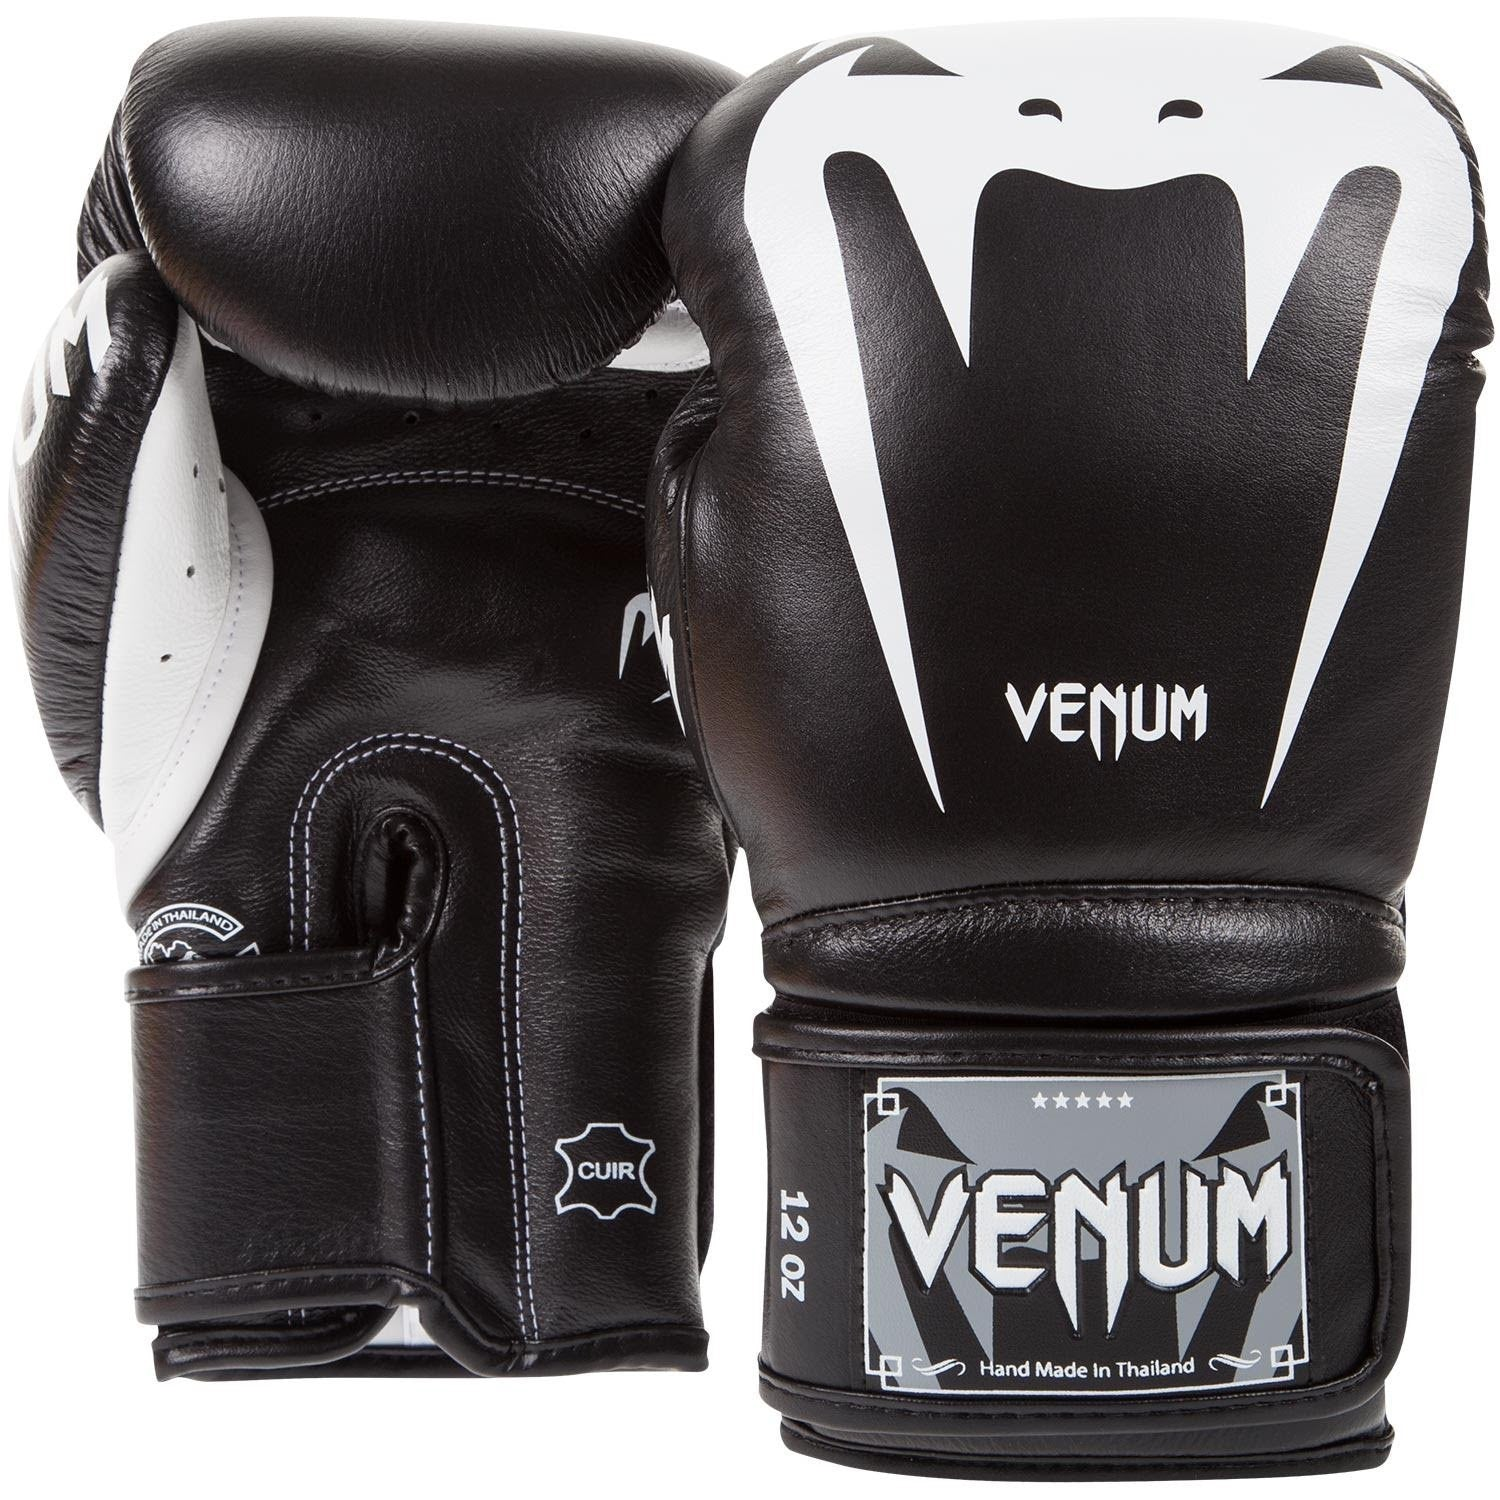 VENUM GLOVES GIANT 3.0 VELCRO BLACK/WHITE - MSM FIGHT SHOP